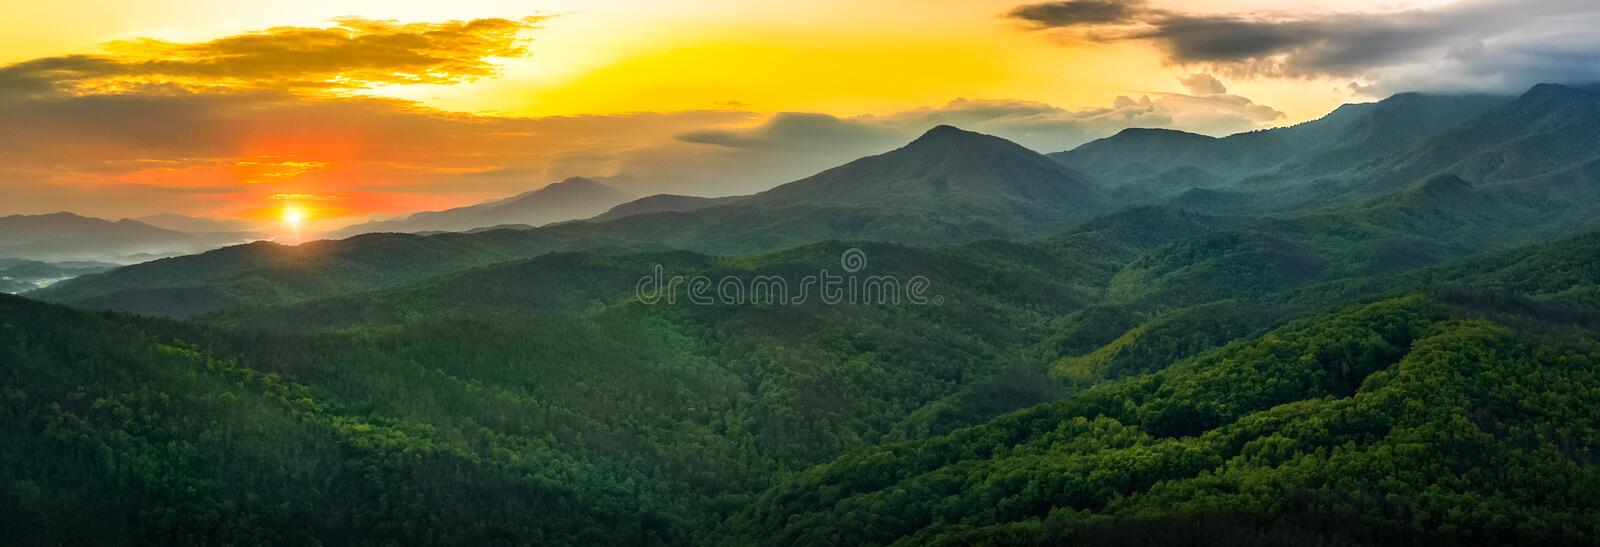 Smokey Mountains Sunset foto de stock royalty free